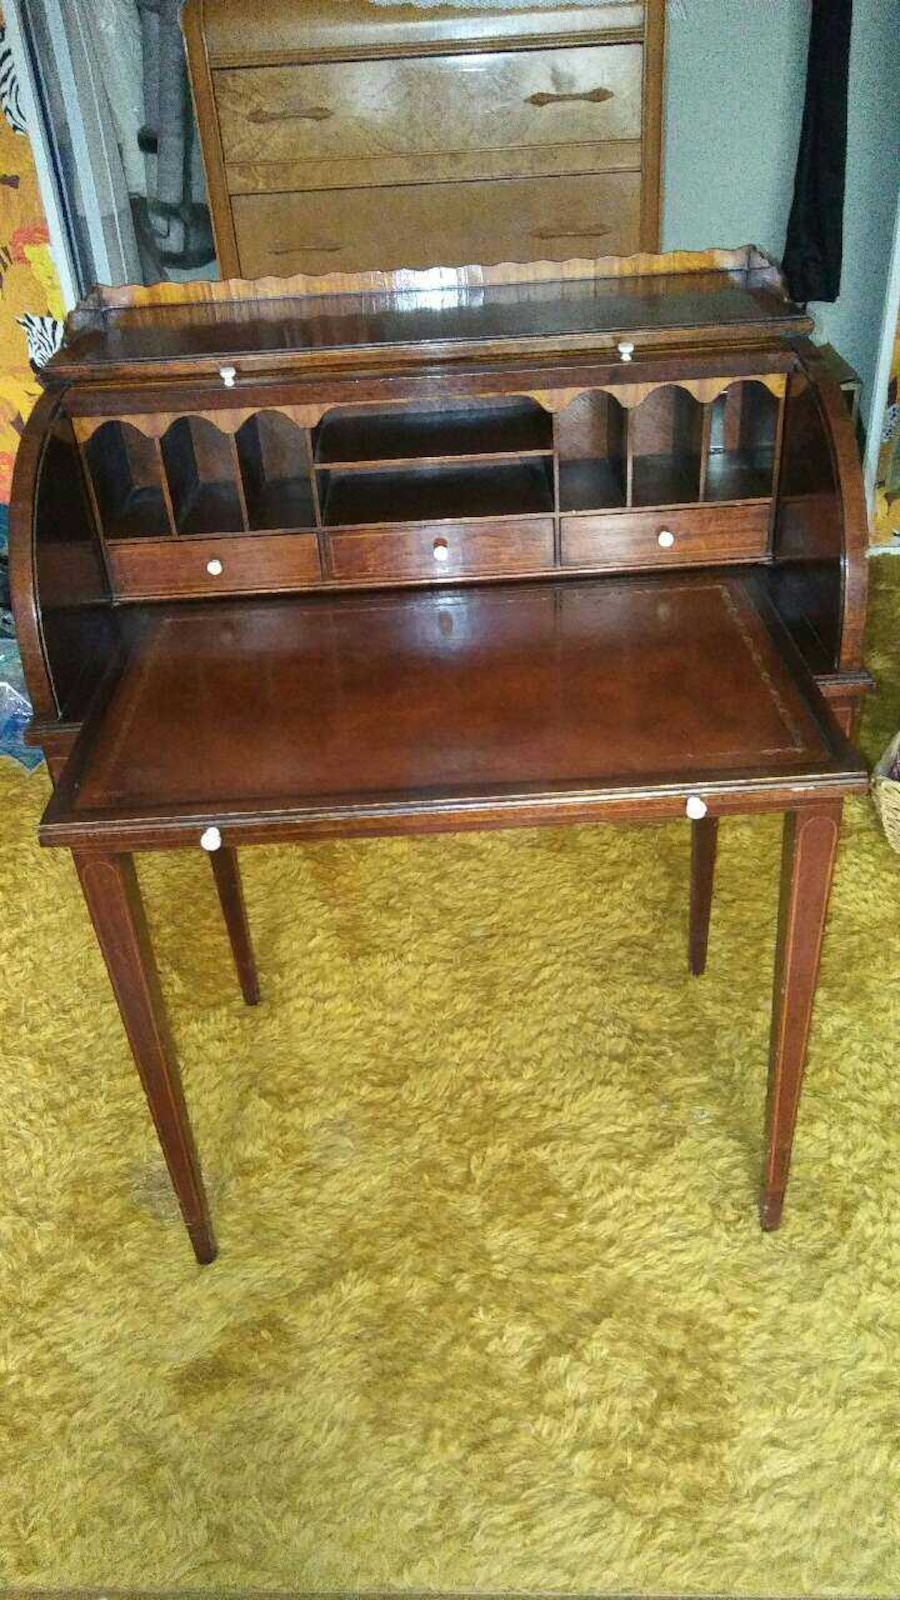 Used Vintage Roll Top Desk In Las Vegas J Jfordvintage